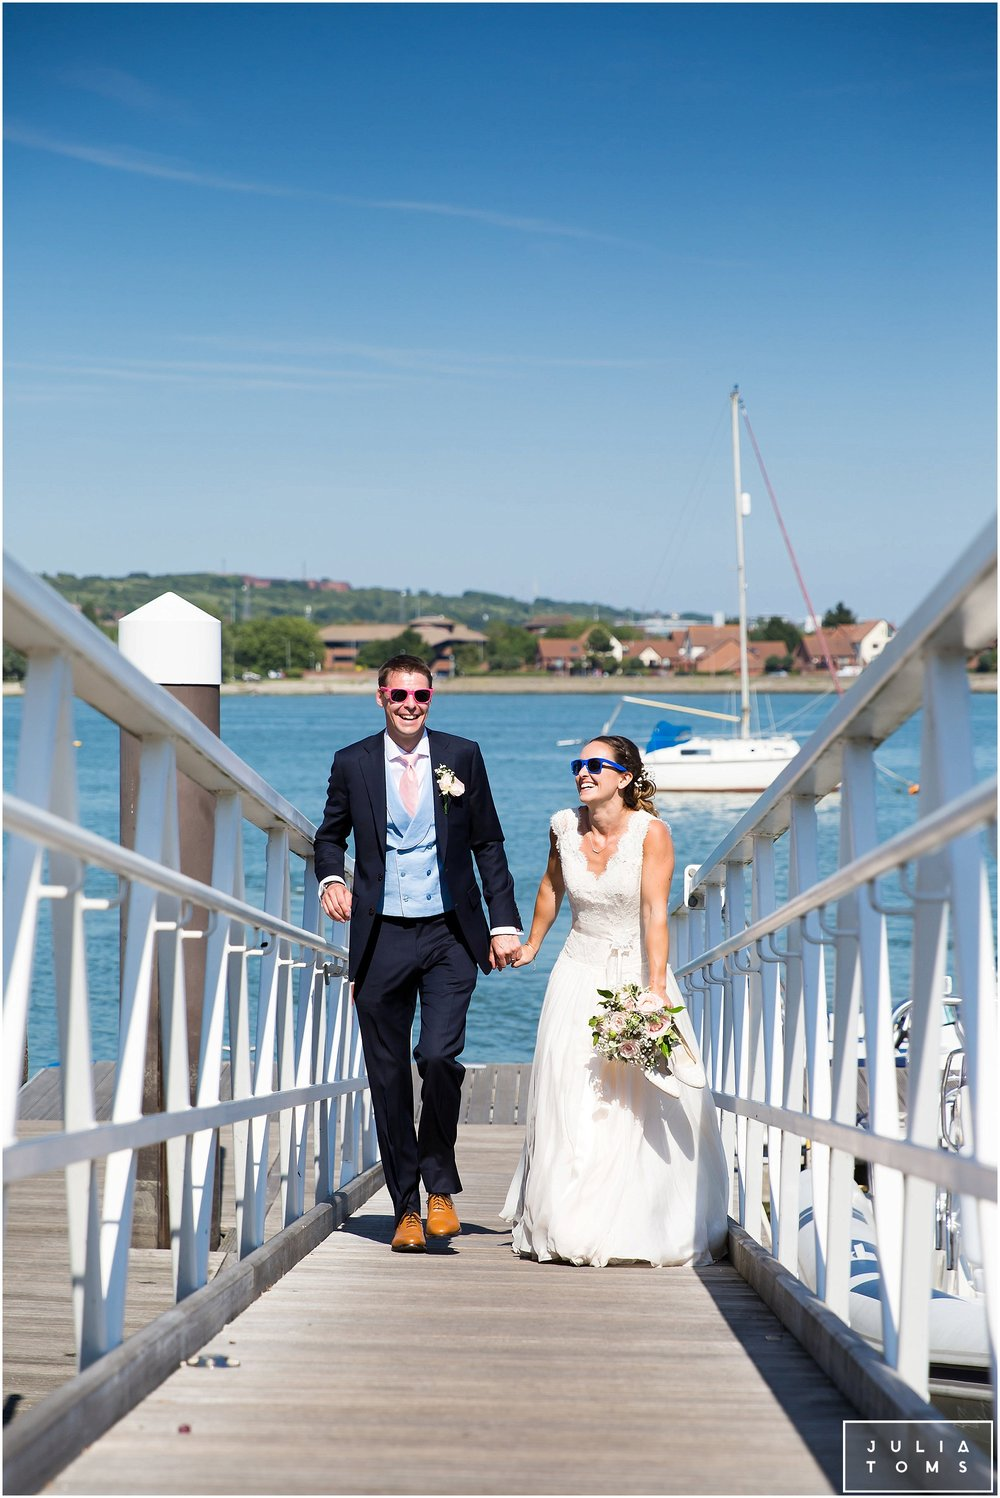 julia_toms_chichester_wedding_photographer_portsmouth_041.jpg